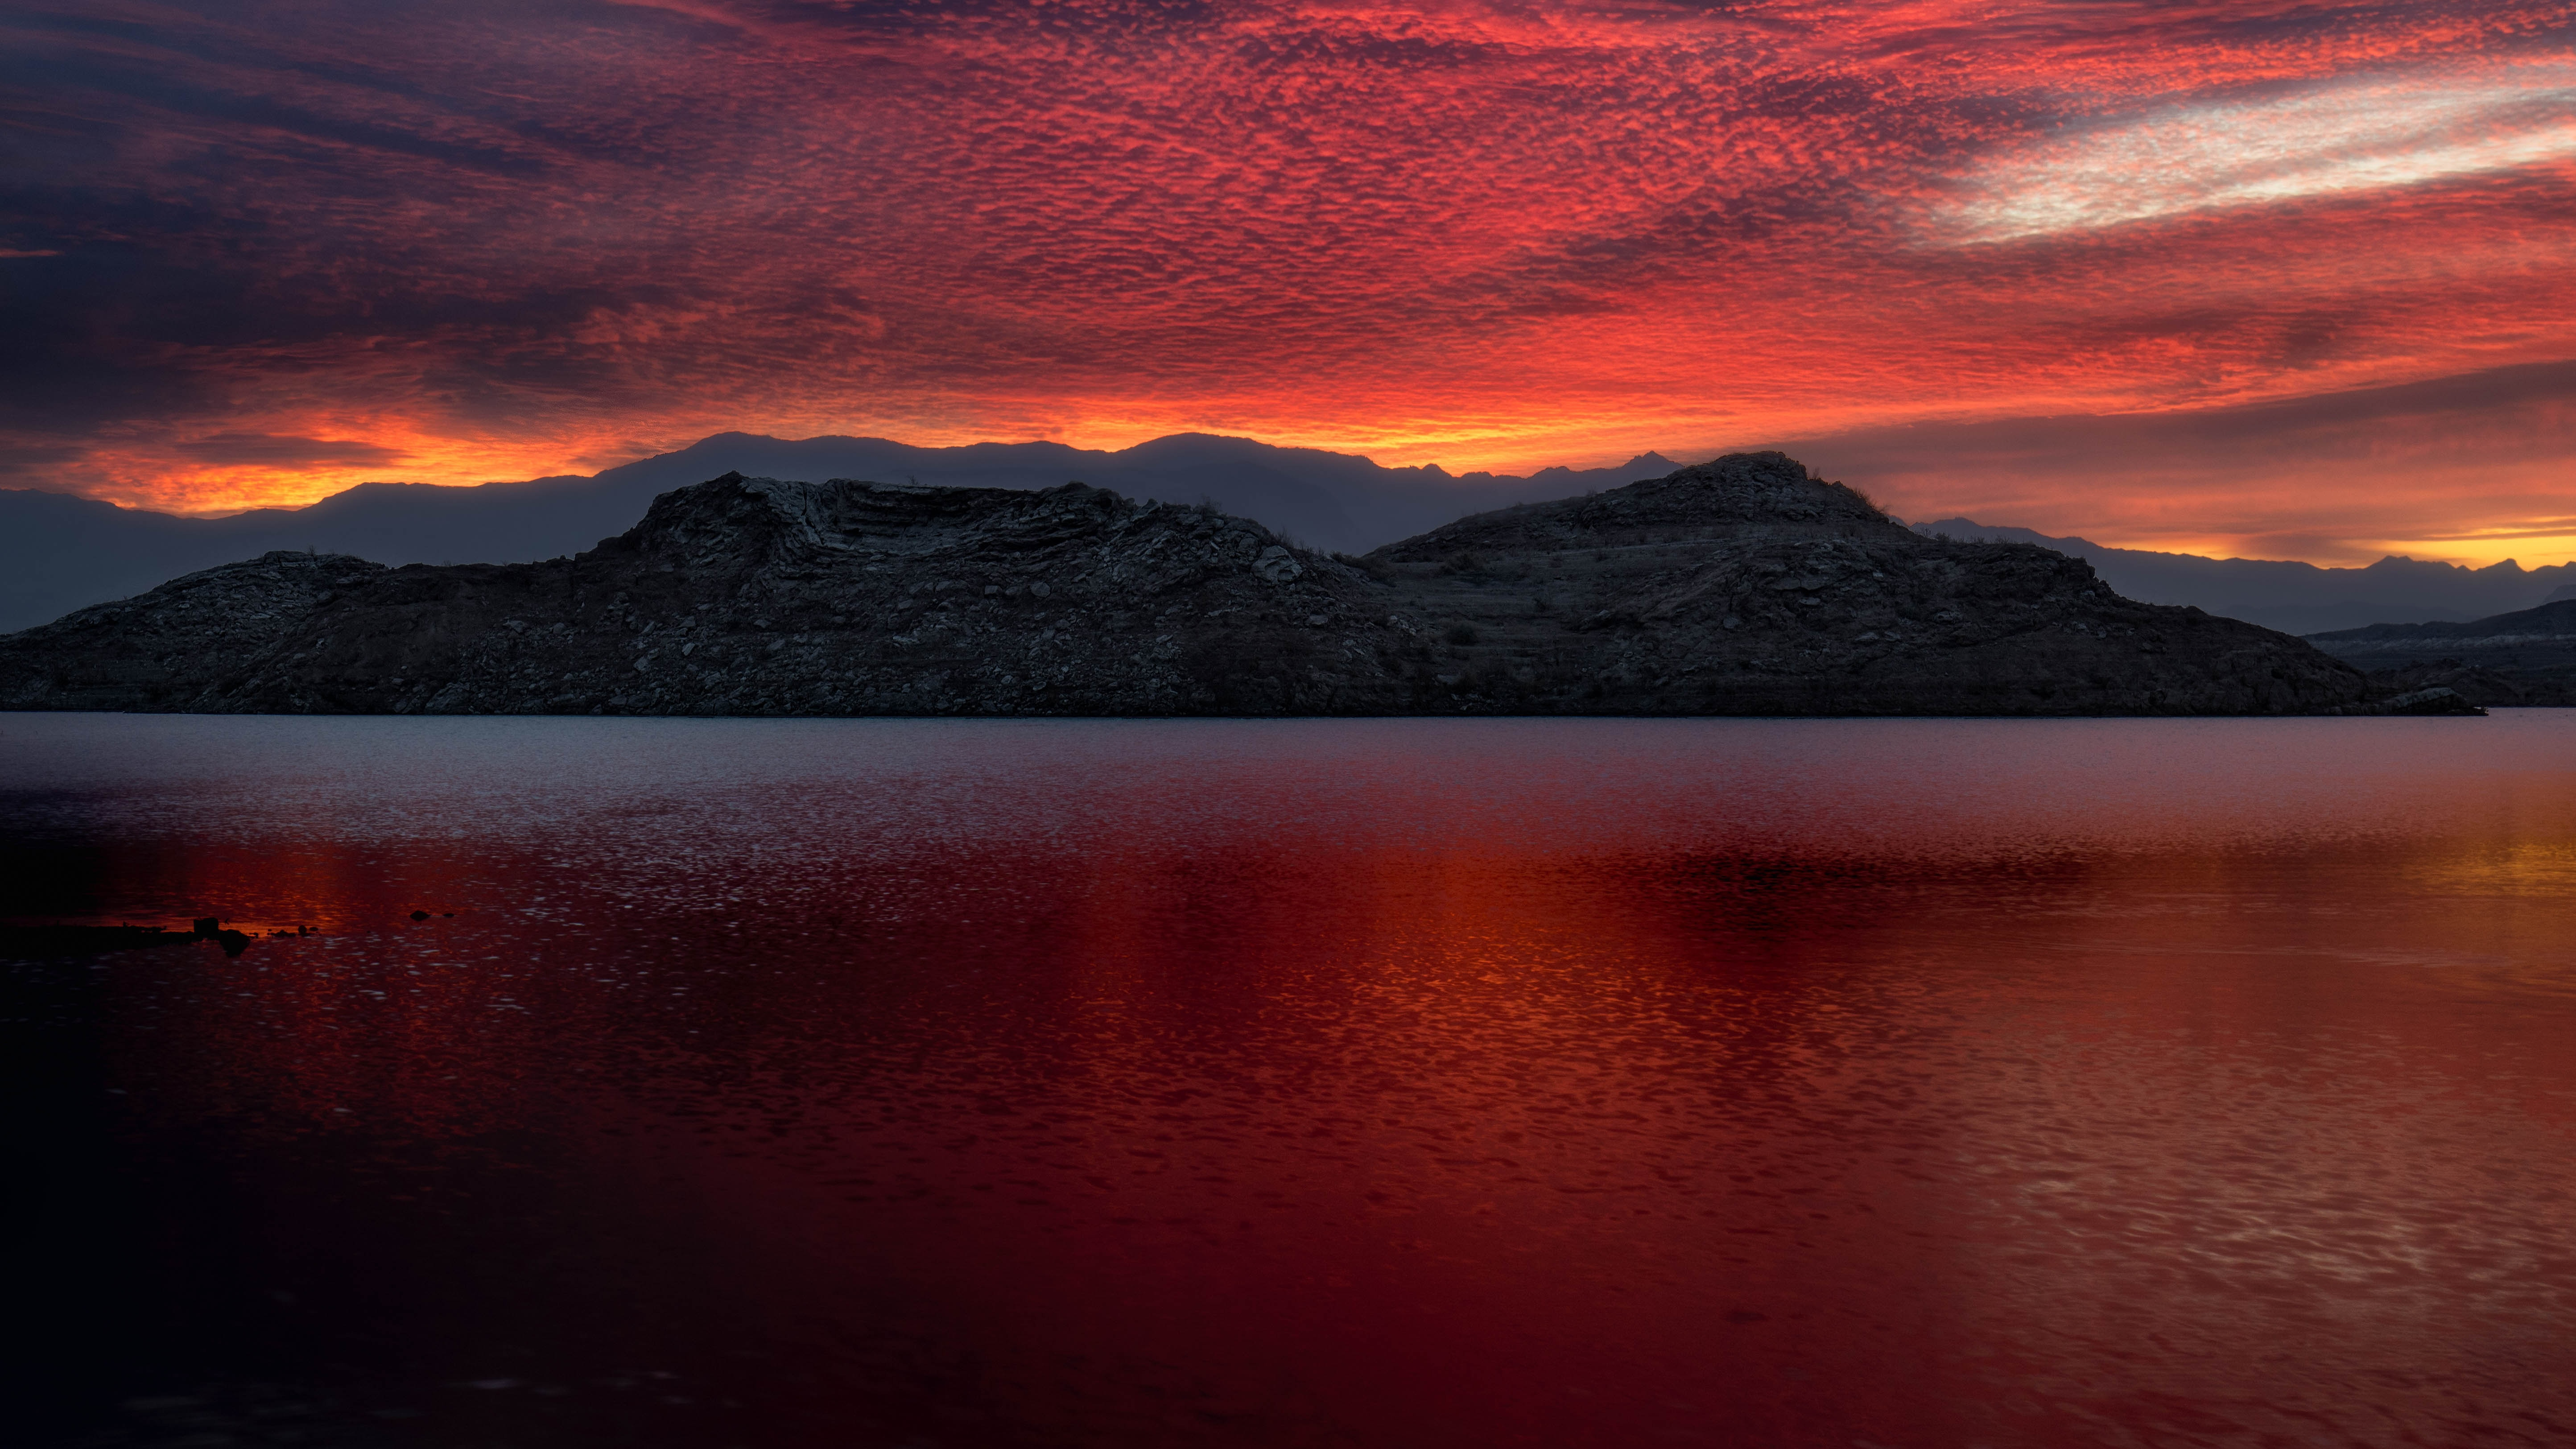 131251 download wallpaper Nature, Meade, Mfa, Usa, United States, Lake, Sunset, Mountains screensavers and pictures for free